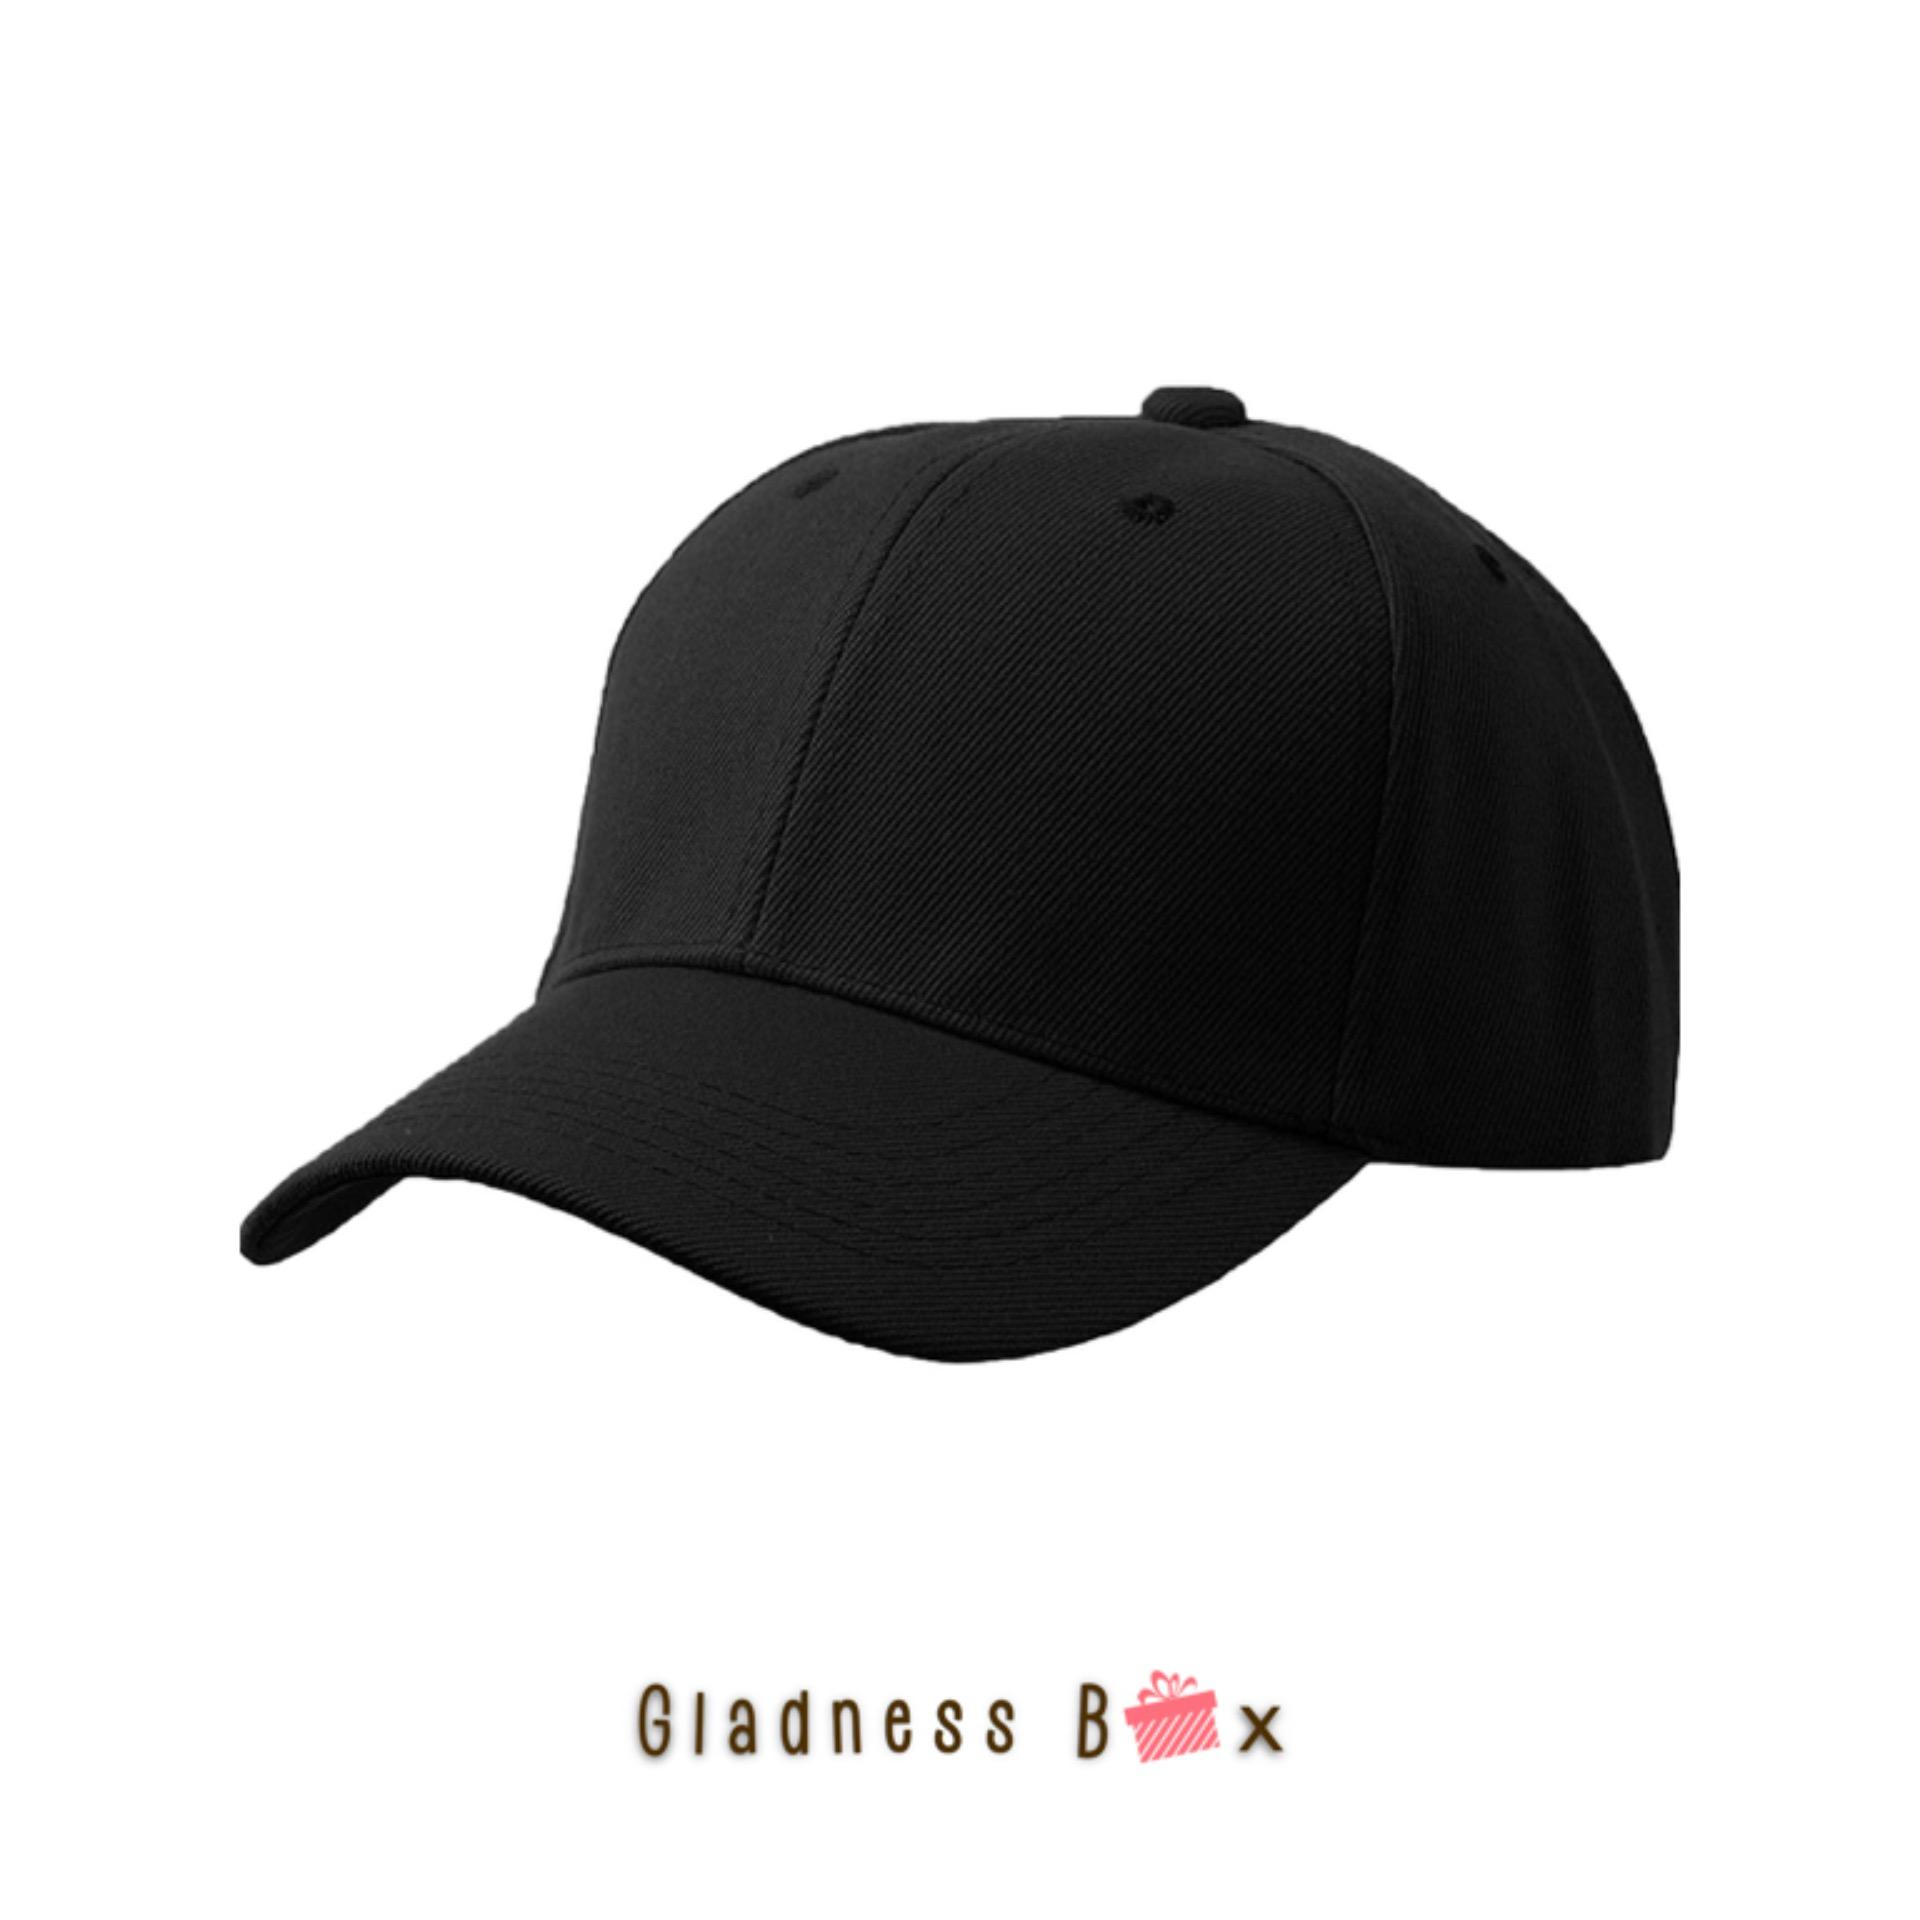 7598de9d396 Gladness Box High Quality Plain Baseball Cap for Men Women Unisex